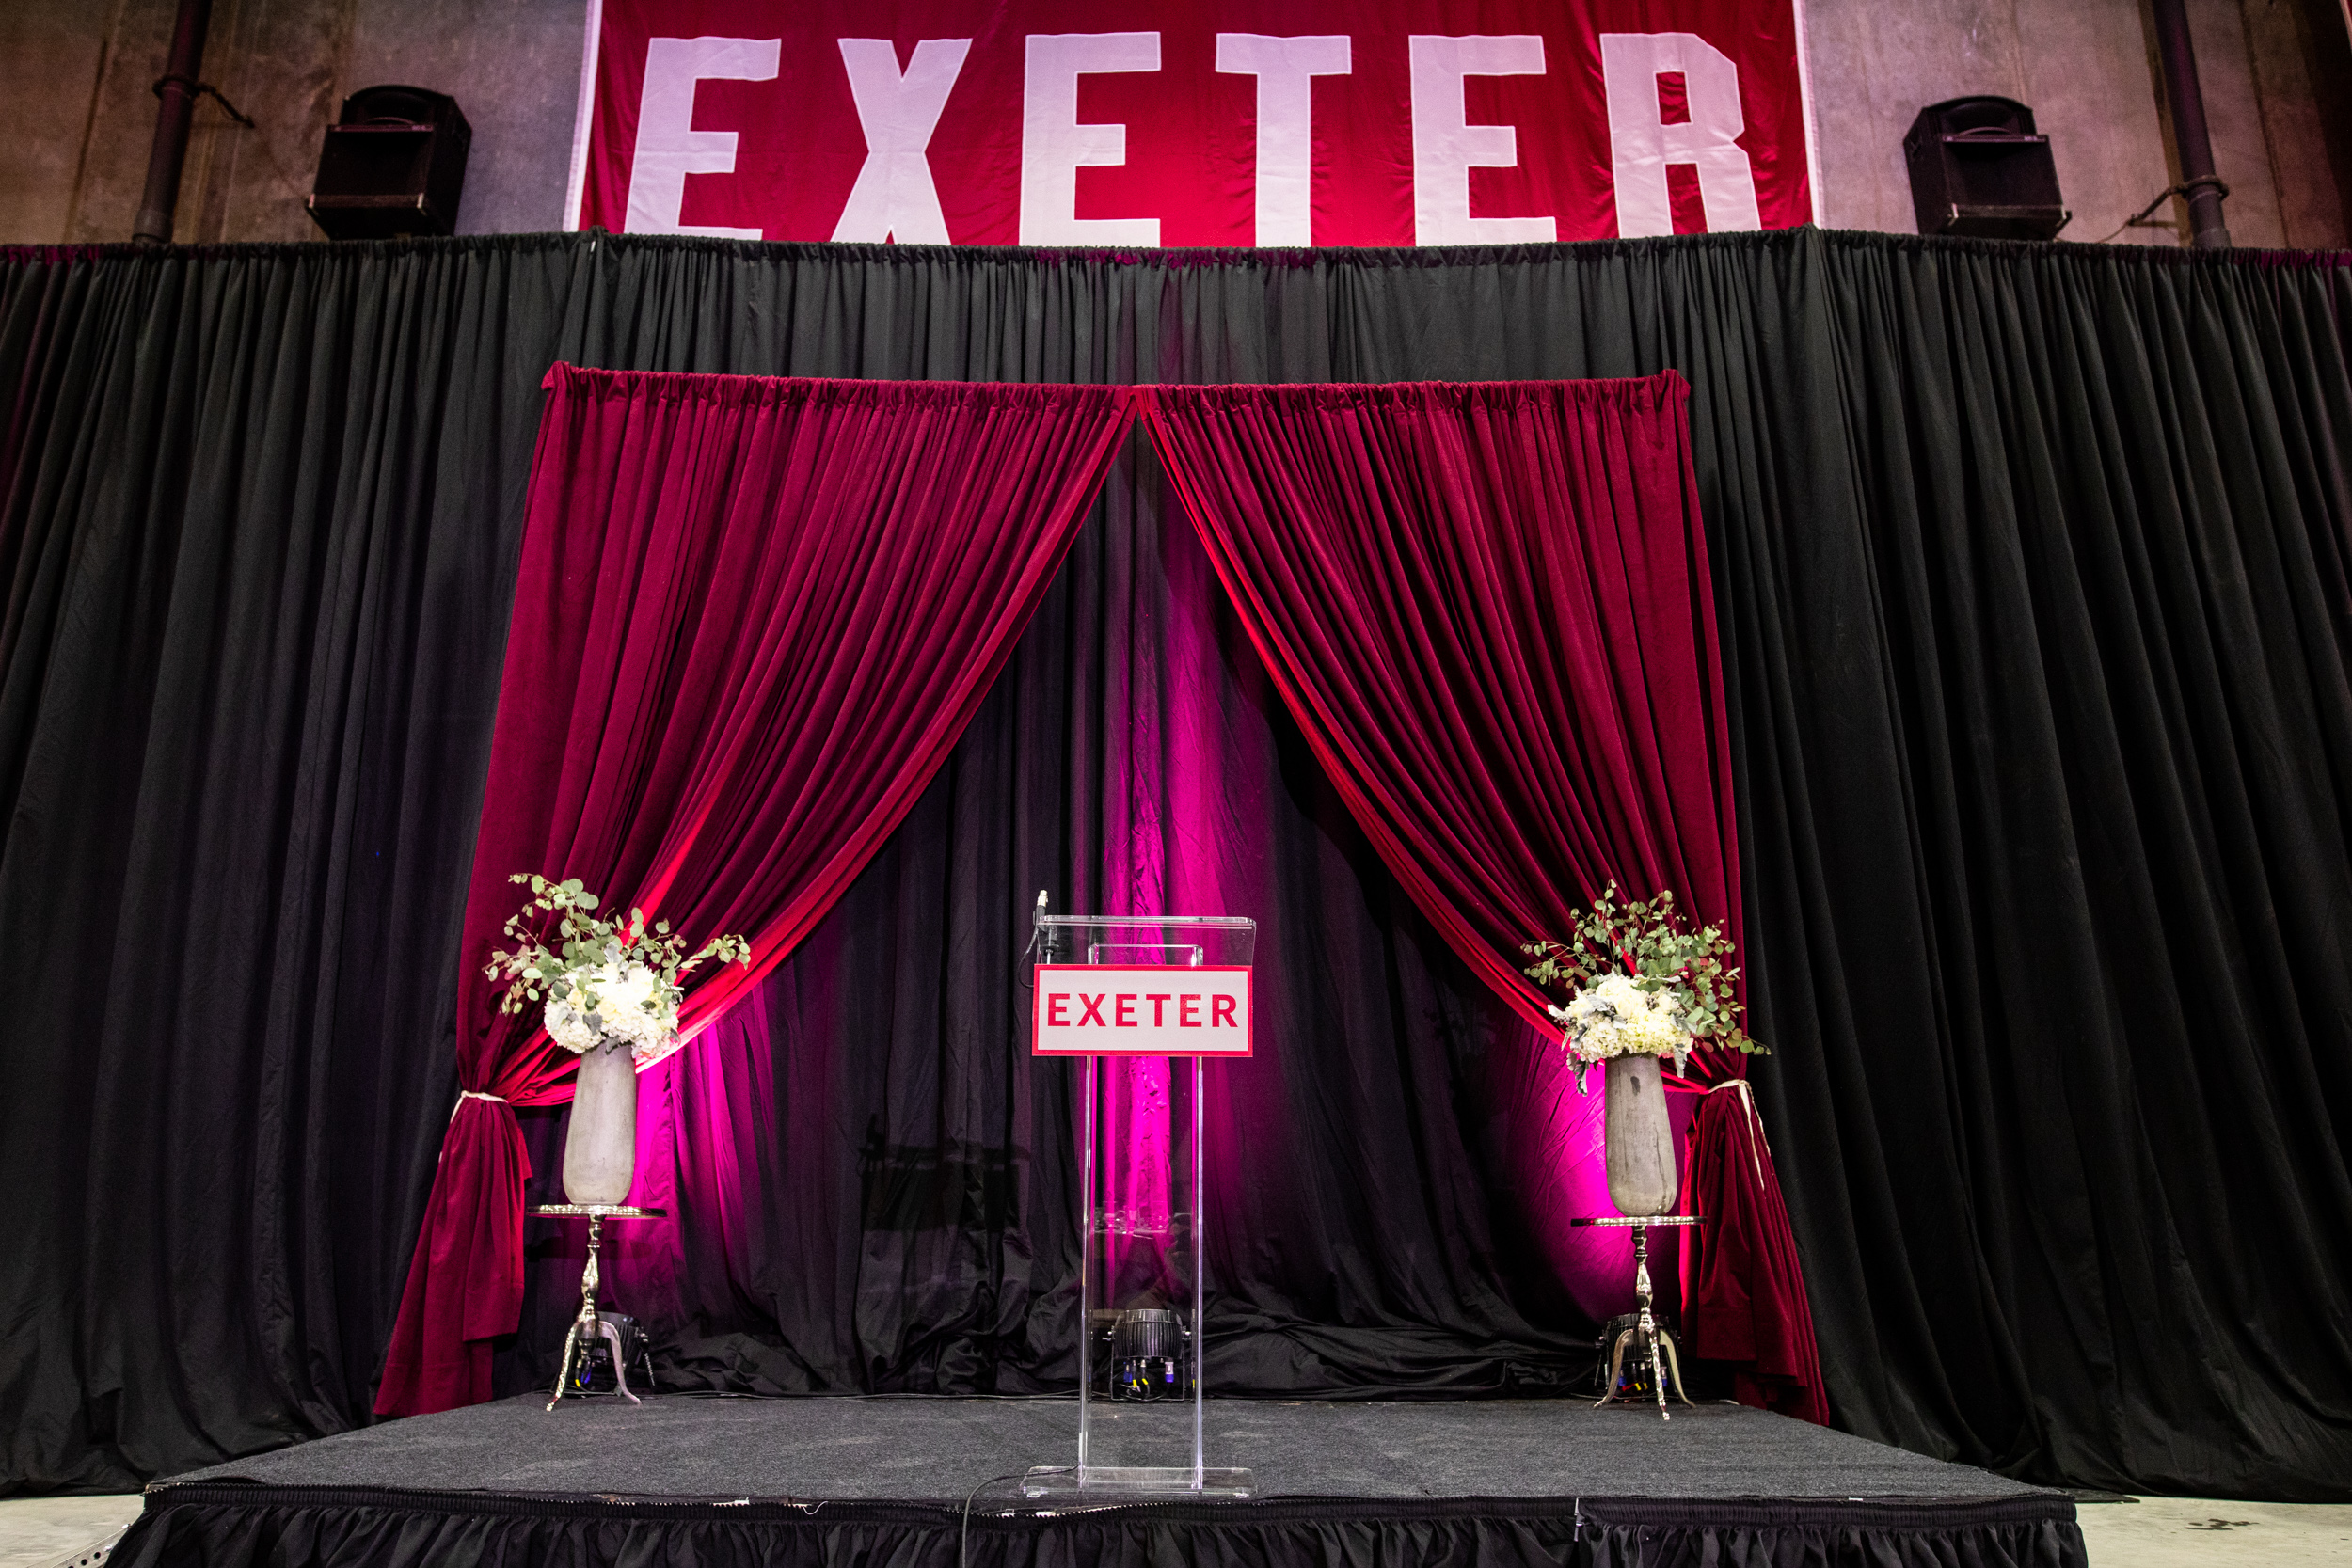 Corporate_Production_Phillips_Exeter_Academy_Pizzuti_Awards_Dinner_stage_design_lighting_front_of_house_floral_arrangement